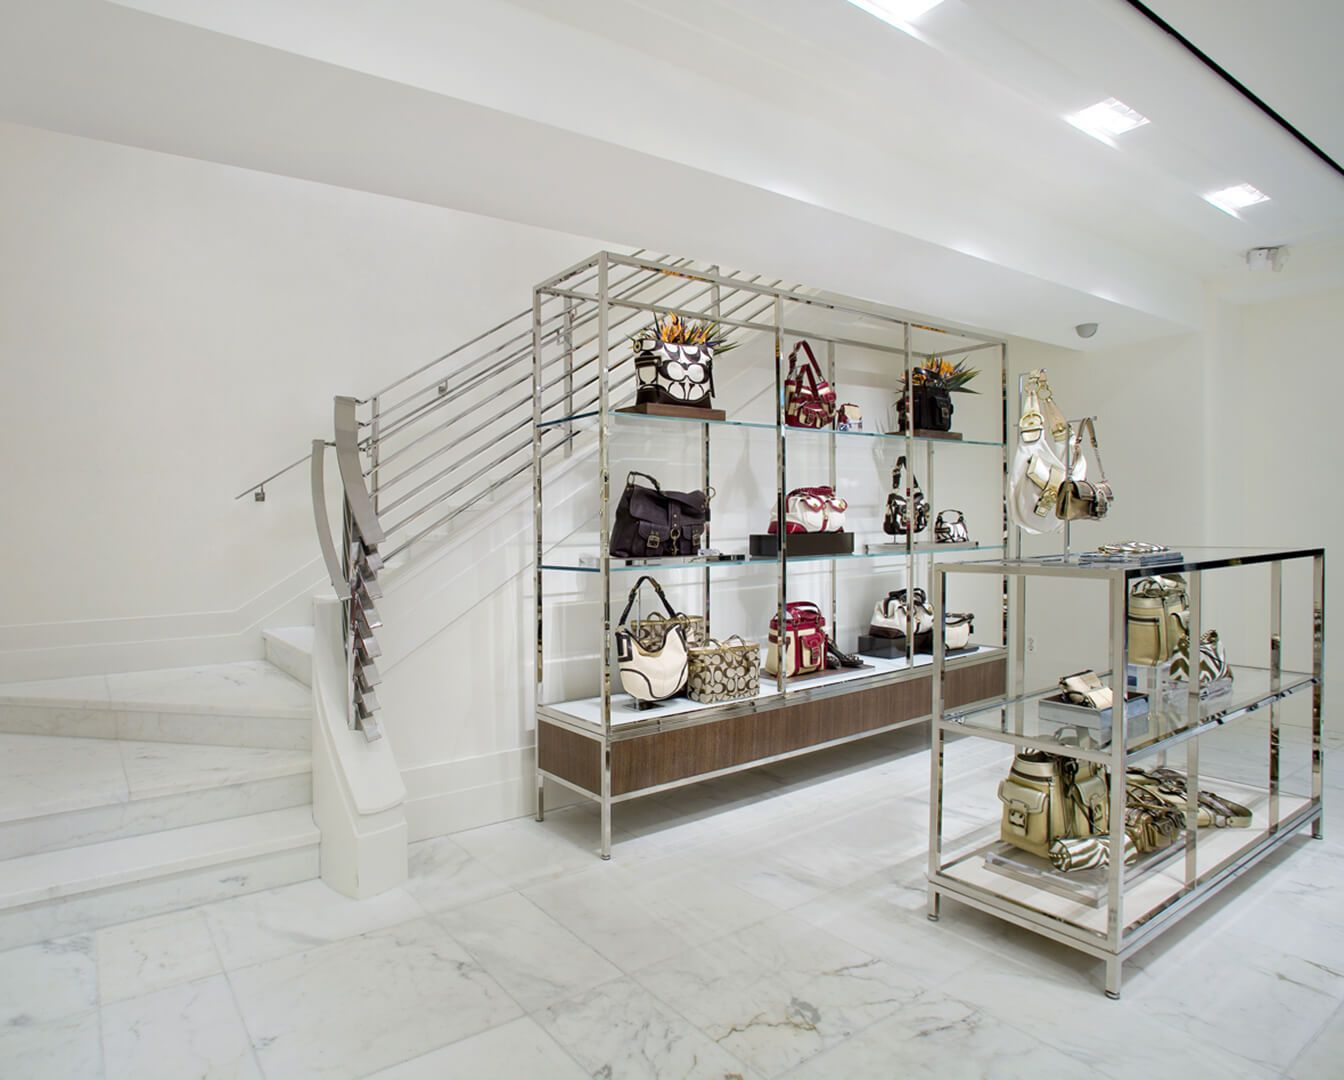 Coach stores by dhd architecture interior design retail store design counter neutral colors purses shelving display modern design